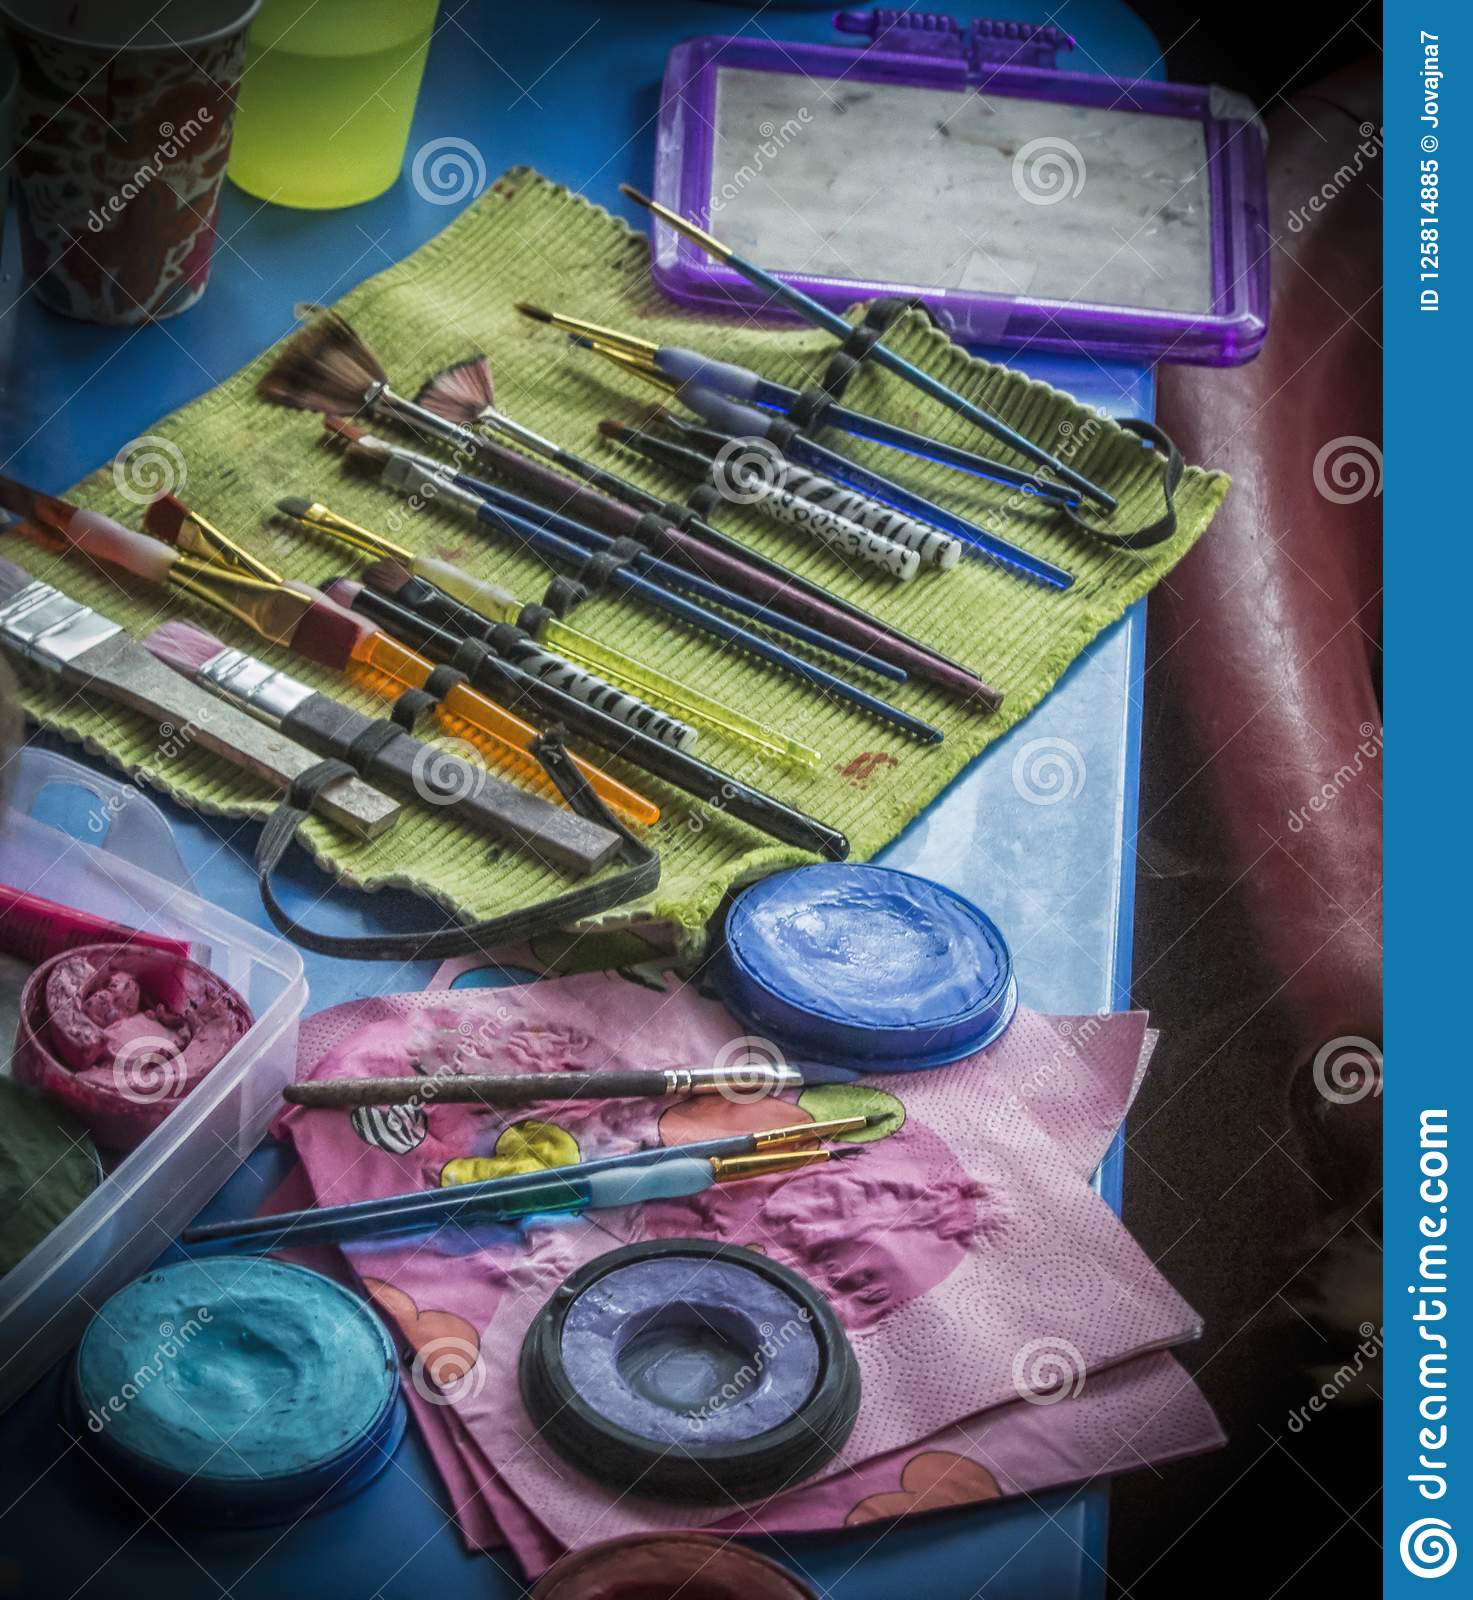 Makeup set for Children`s Birthday Party